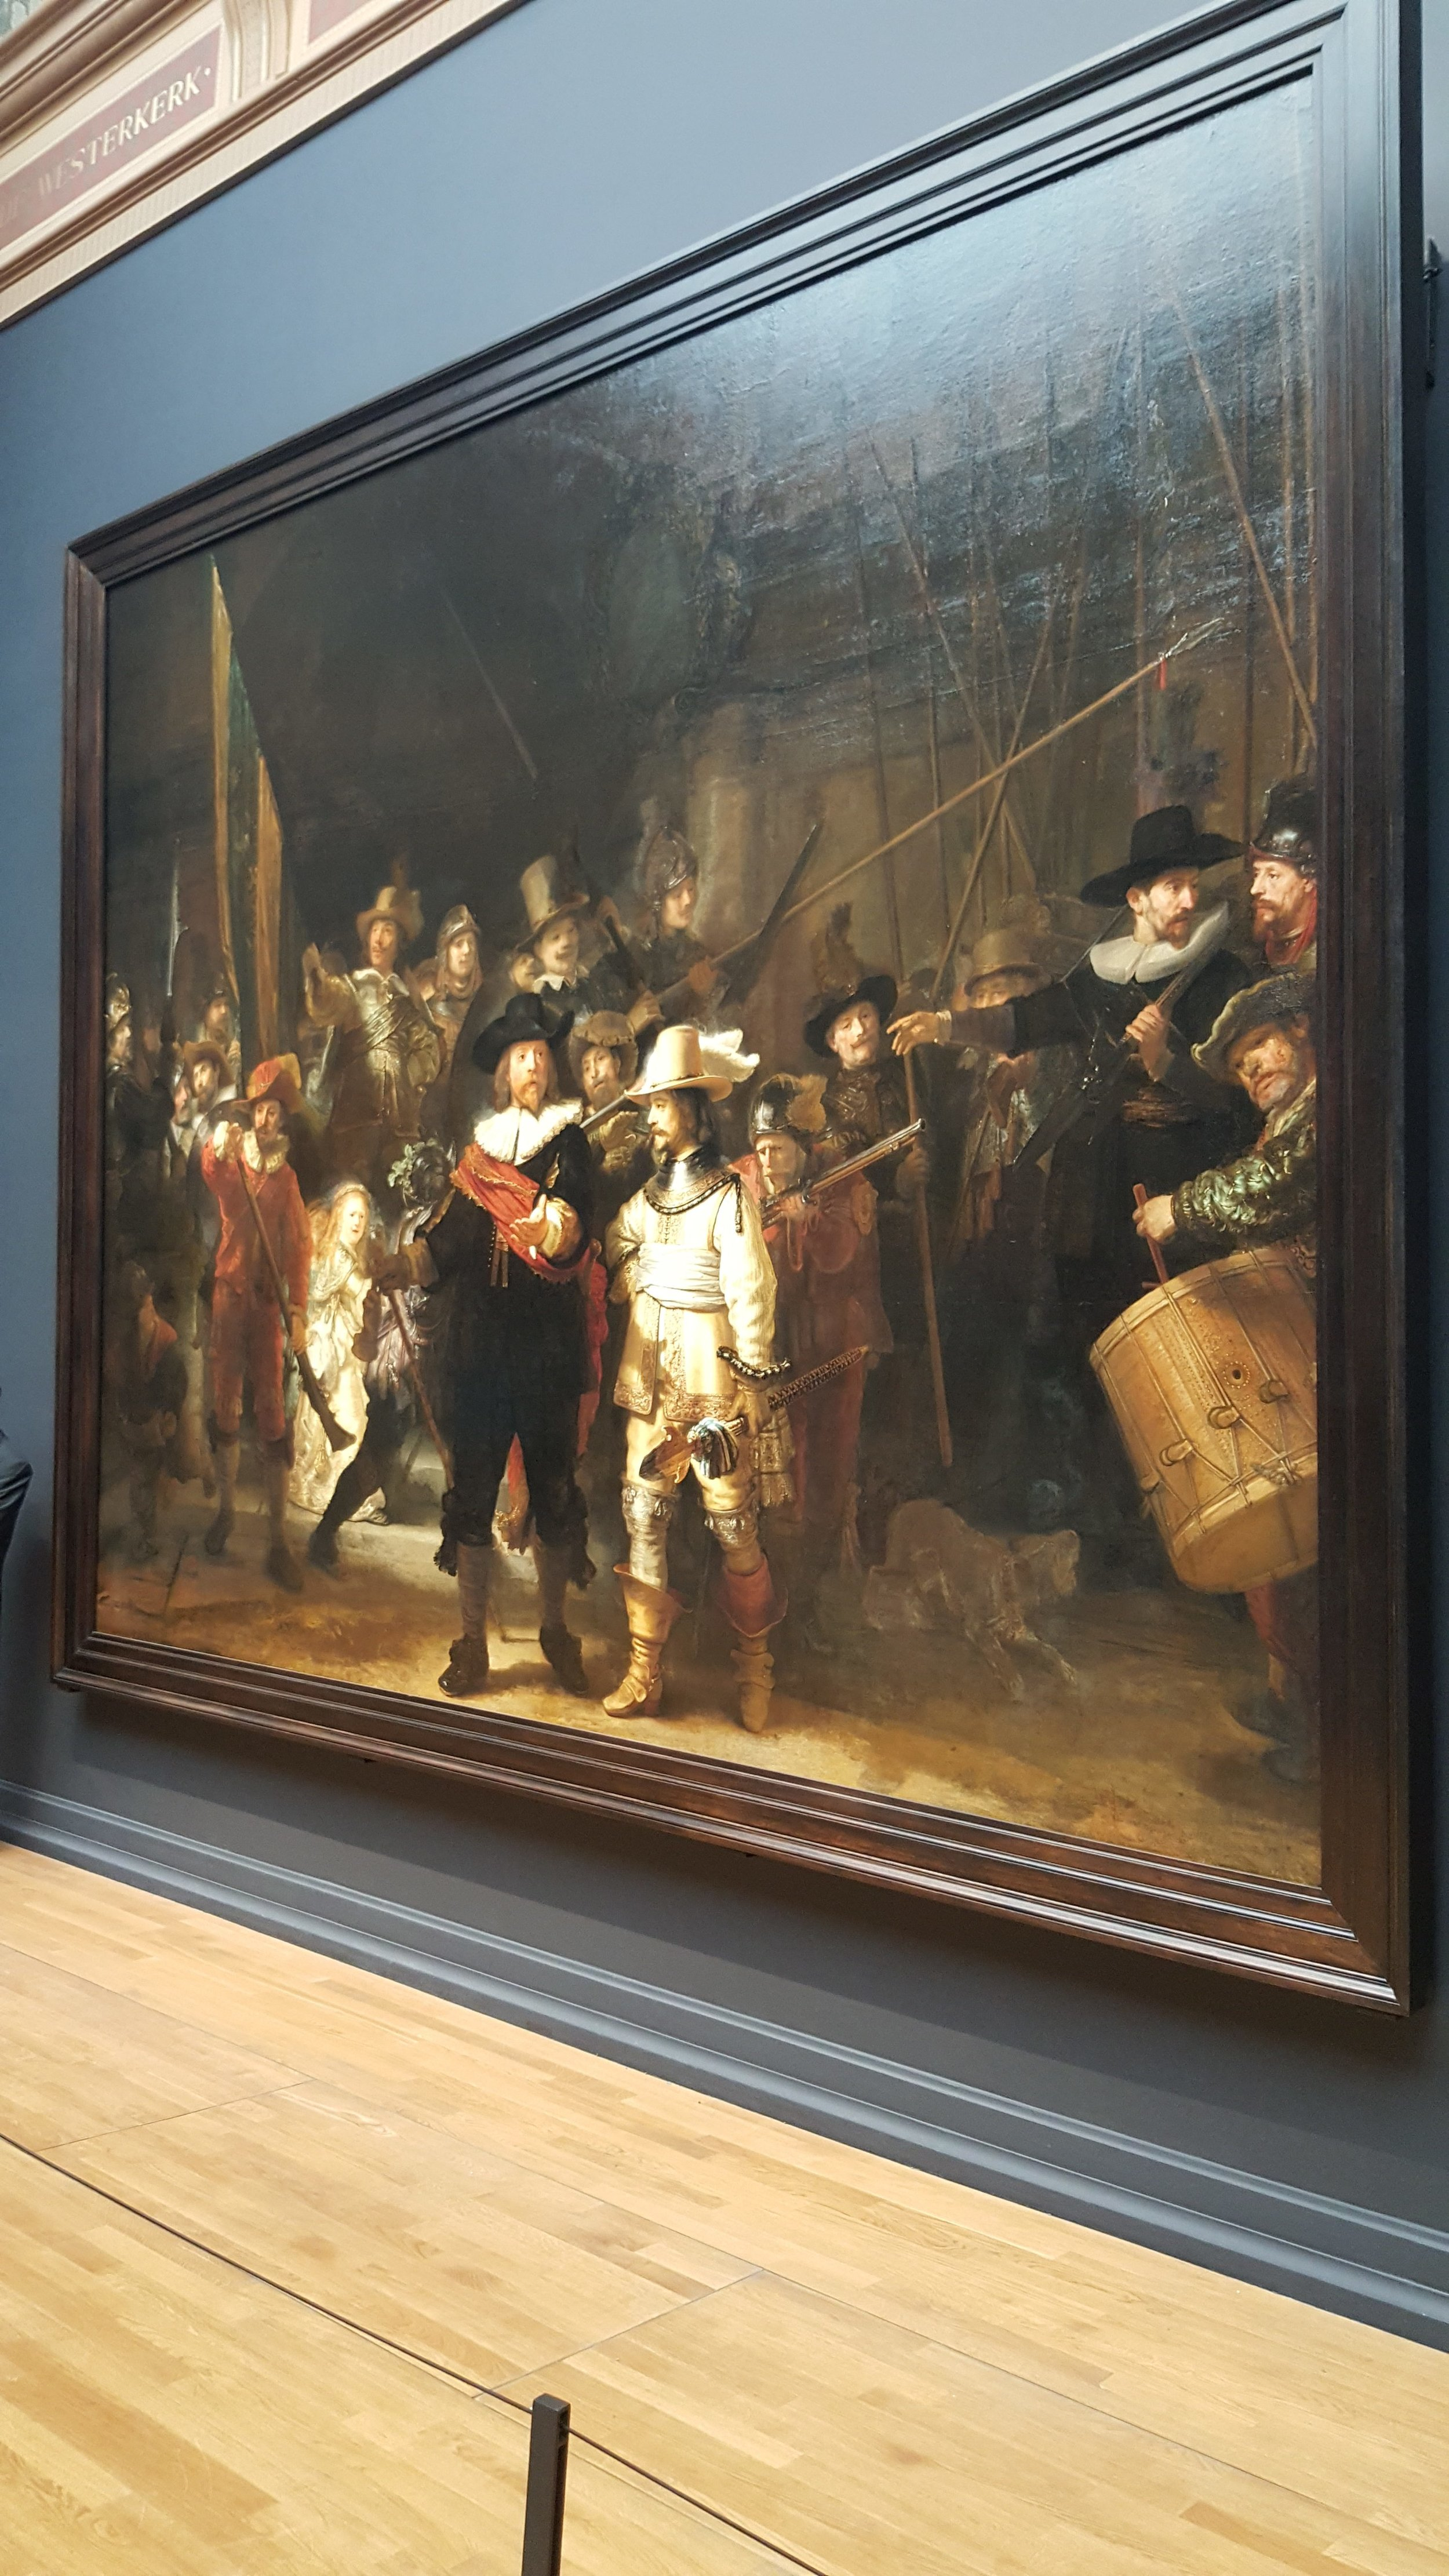 Night Watch by Rembrandt at the Rijksmuseum